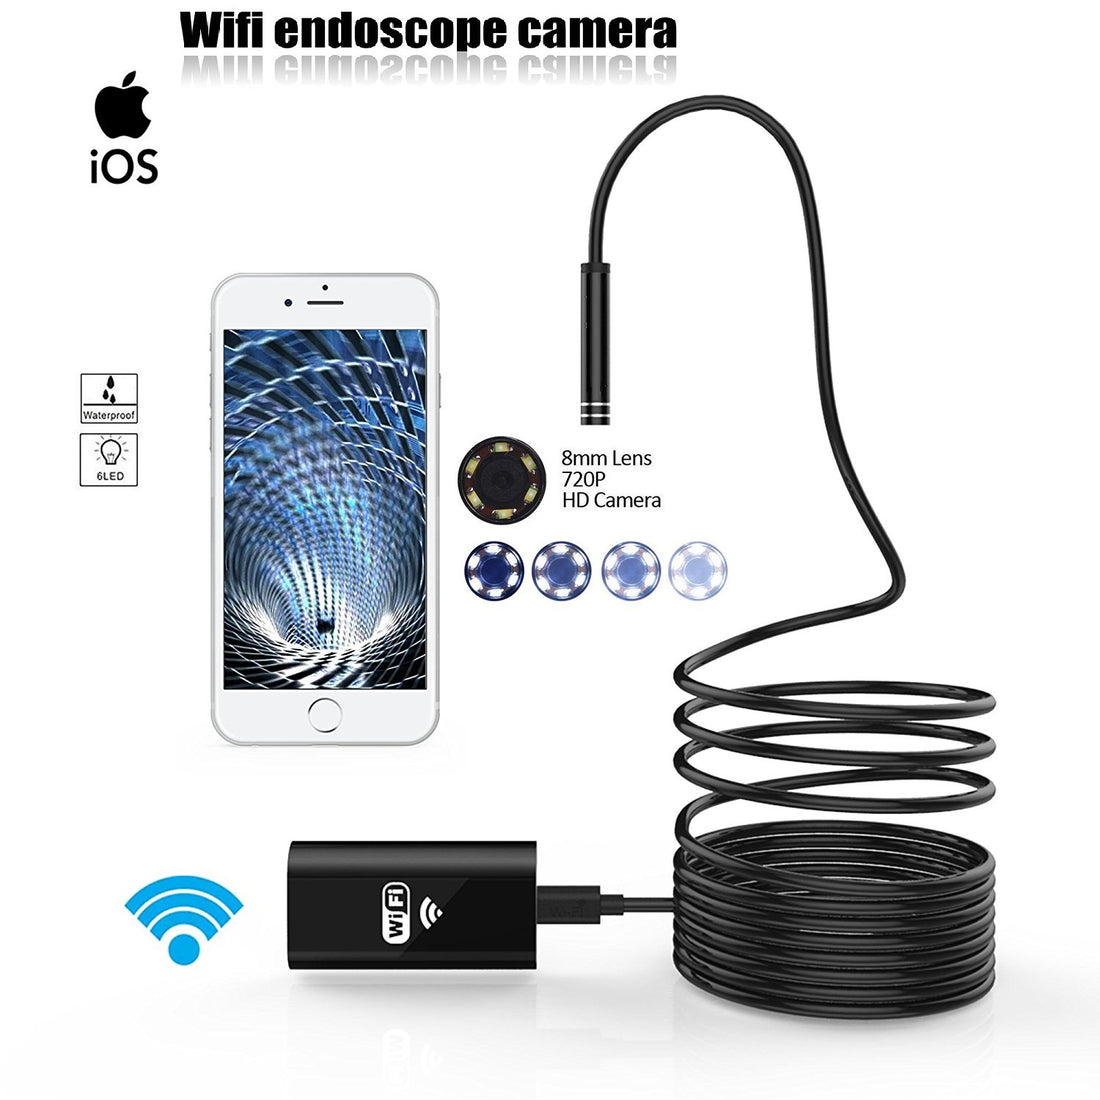 Wireless Endoscope 720P HD Camera For iPhones